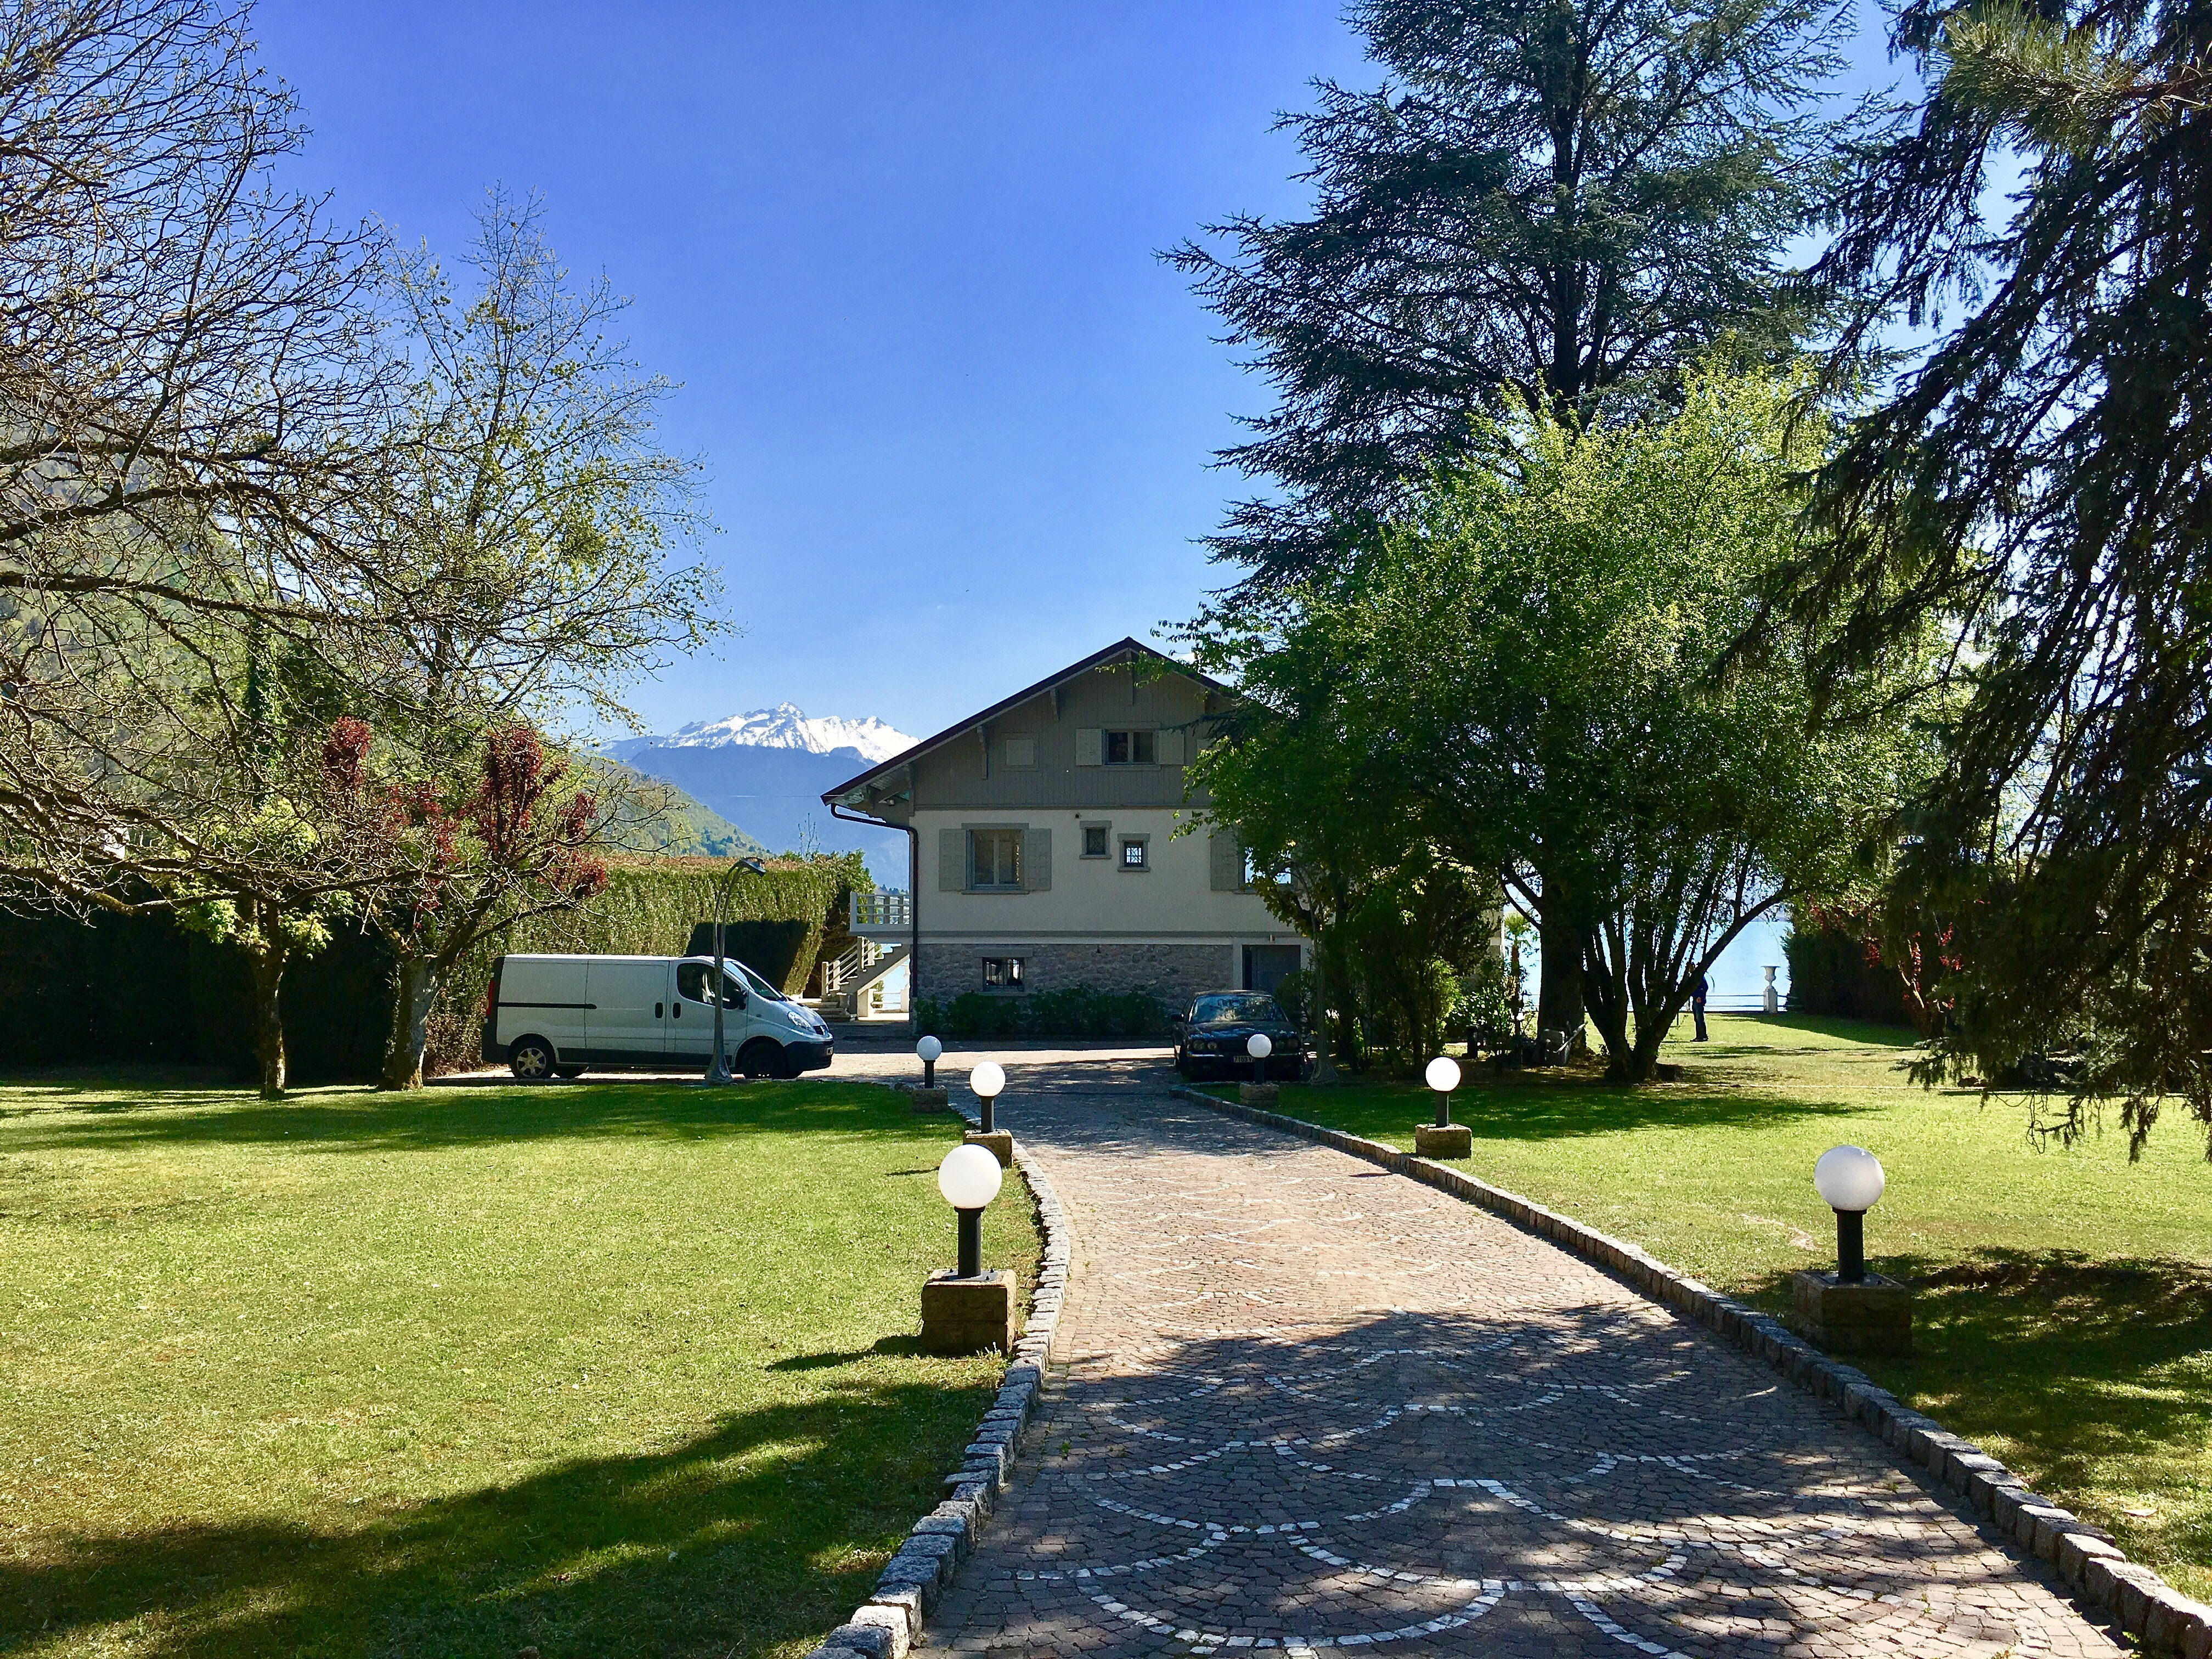 Annecy location france brc gestion entretien jardin Entretien jardin d une location